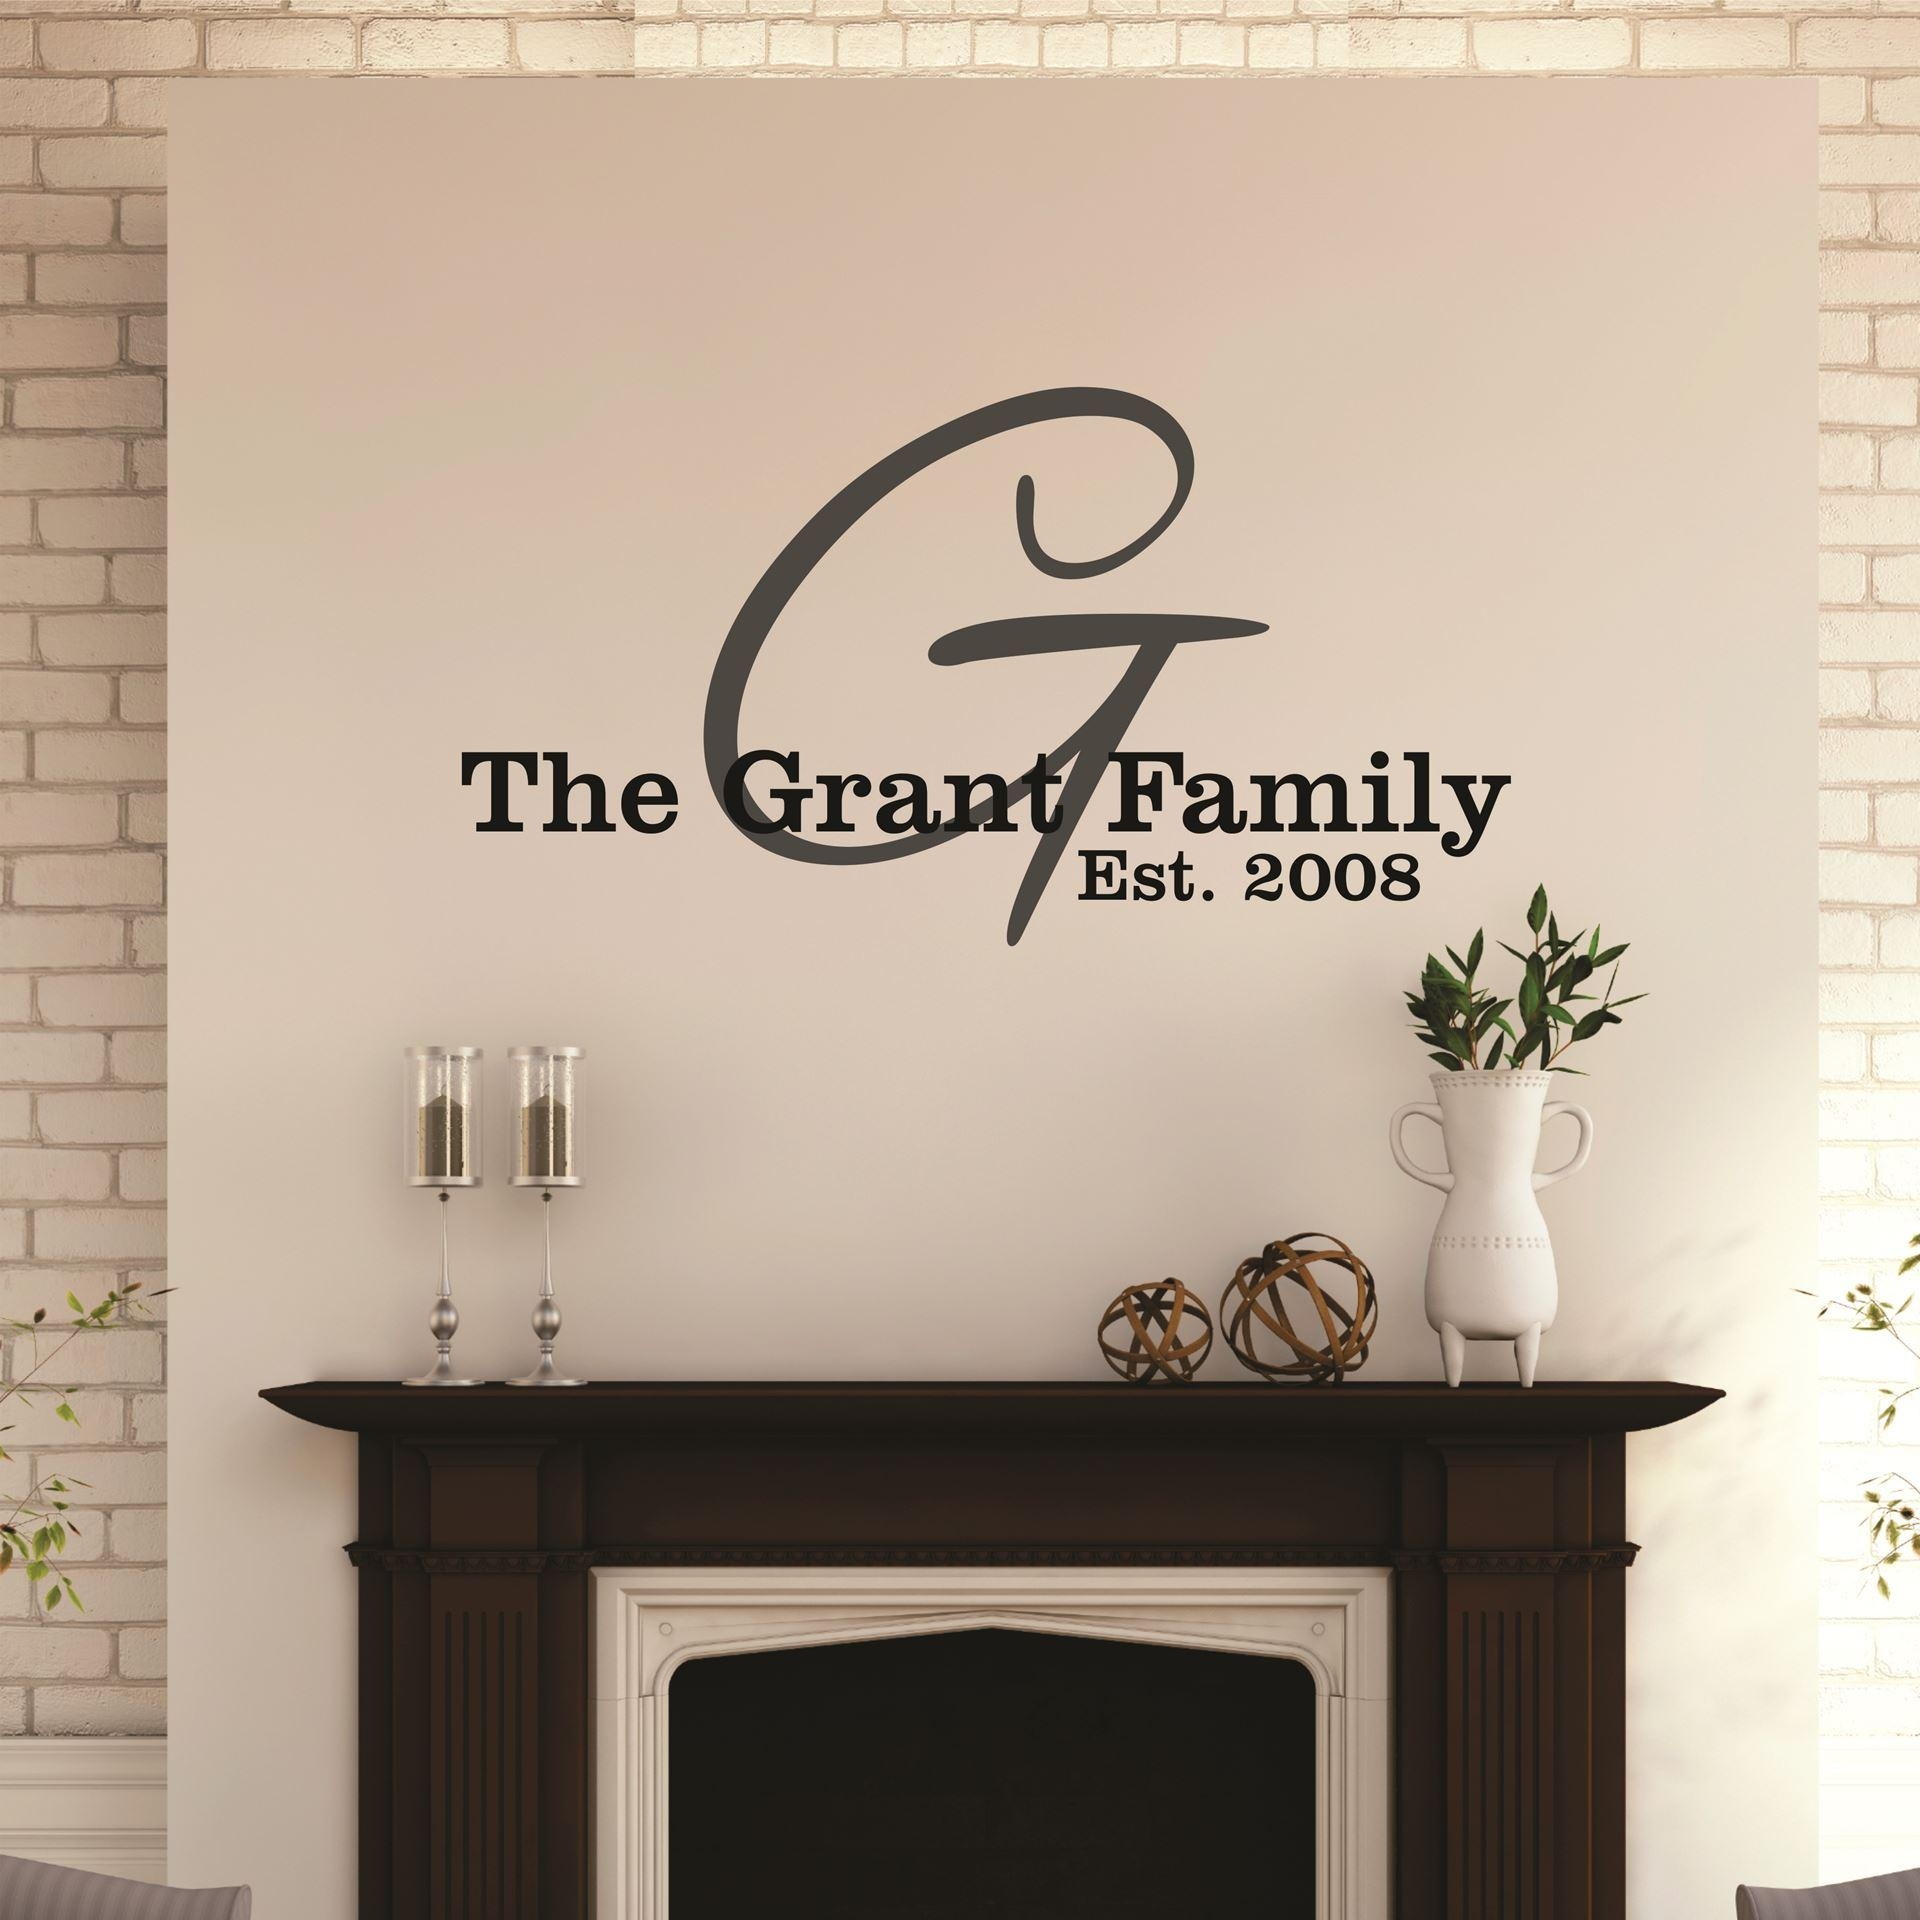 Trendy Last Name Wall Art Gifts Wall Decals Personalised Family Throughout Personalized Last Name Wall Art (View 15 of 20)